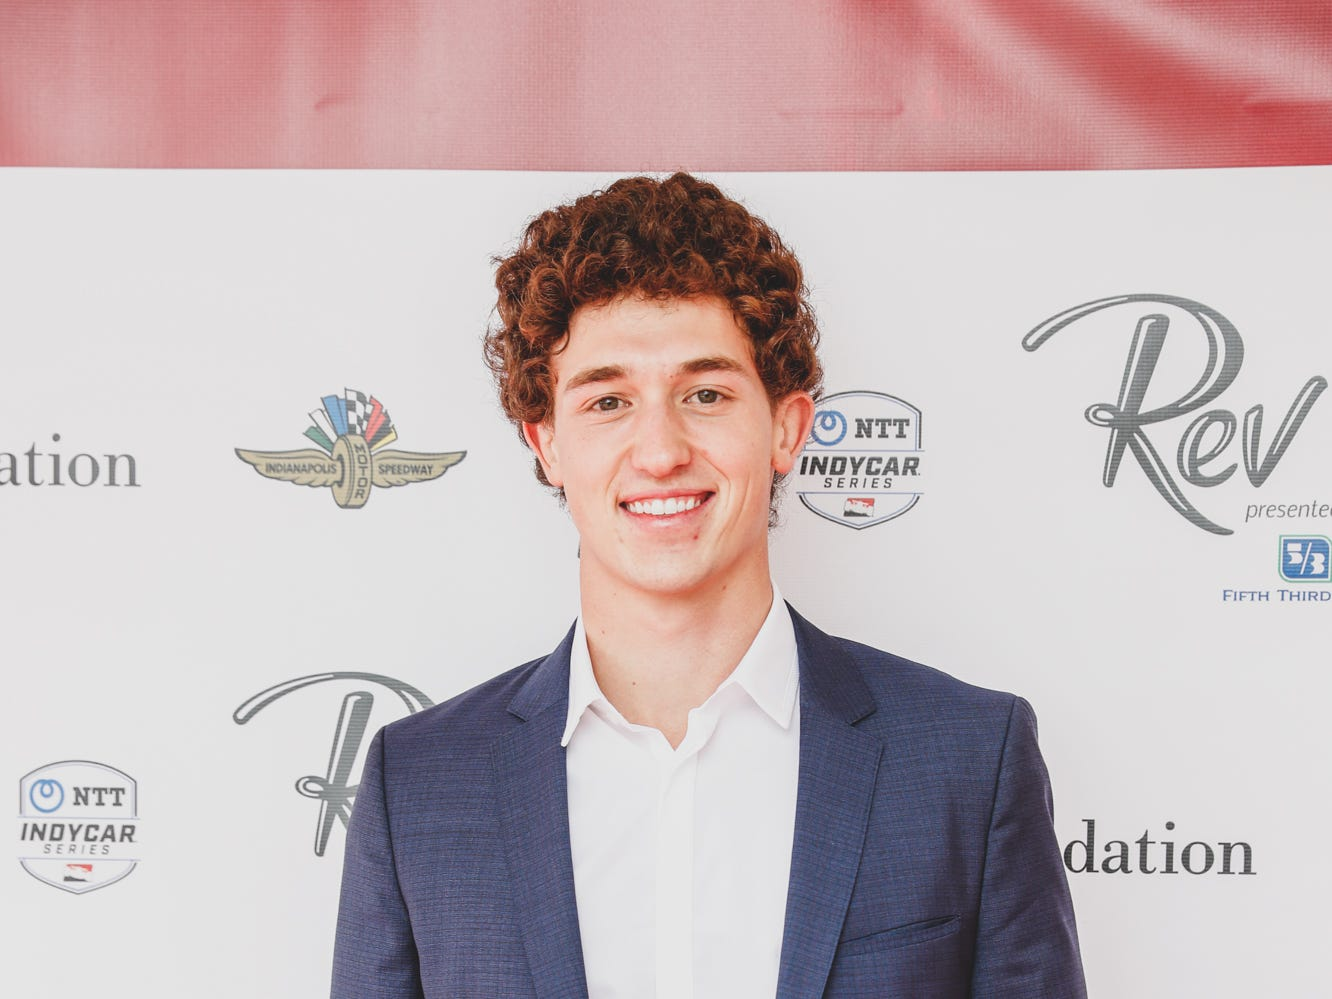 IndyCar driver Matheus Leist walks the red carpet at the Rev Indy fundraiser, held at the Indianapolis Motor Speedway on Saturday, May 4, 2019. Funds raised support the IU Health Foundation statewide and the IU Health Emergency Medical Center at IMS.